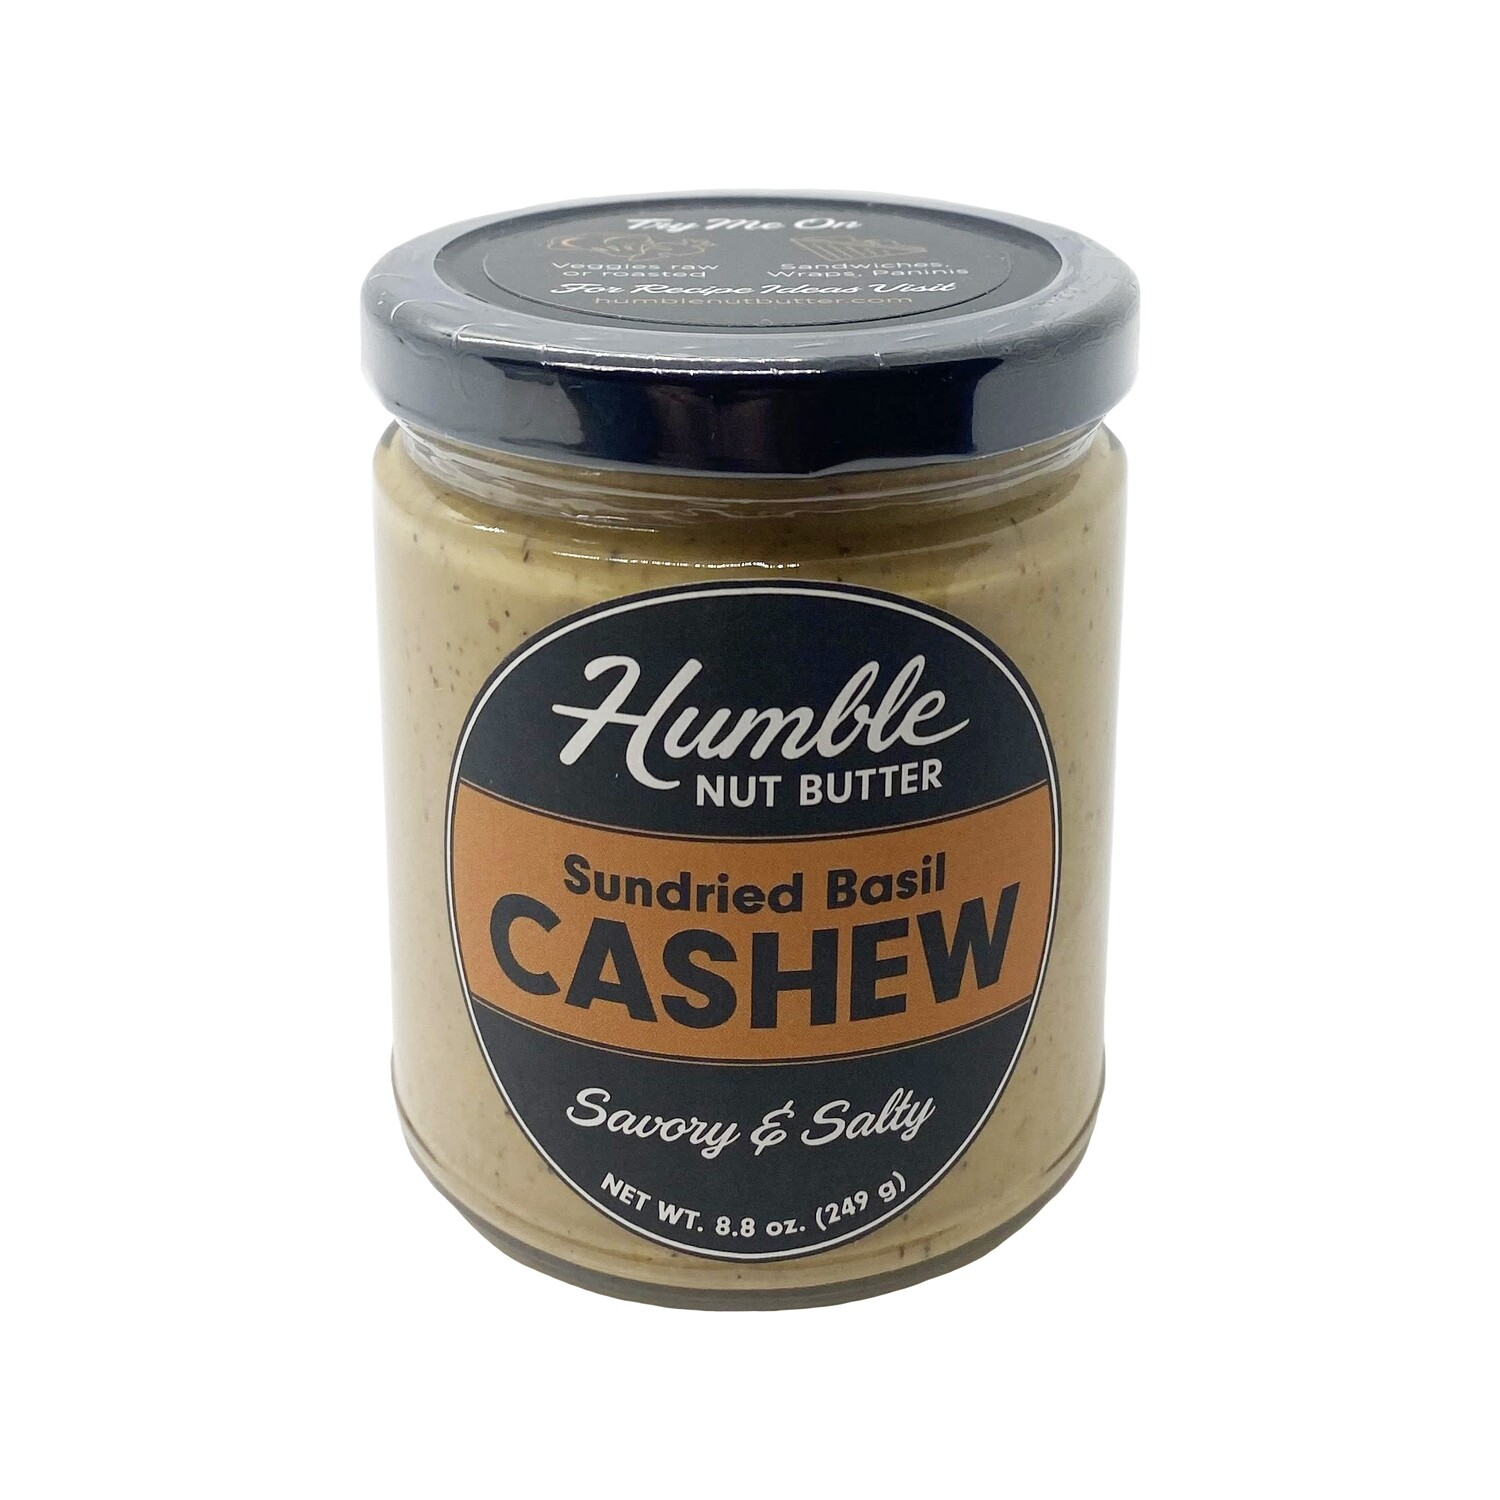 Humble Sundried Basil Cashew Butter 8.8oz